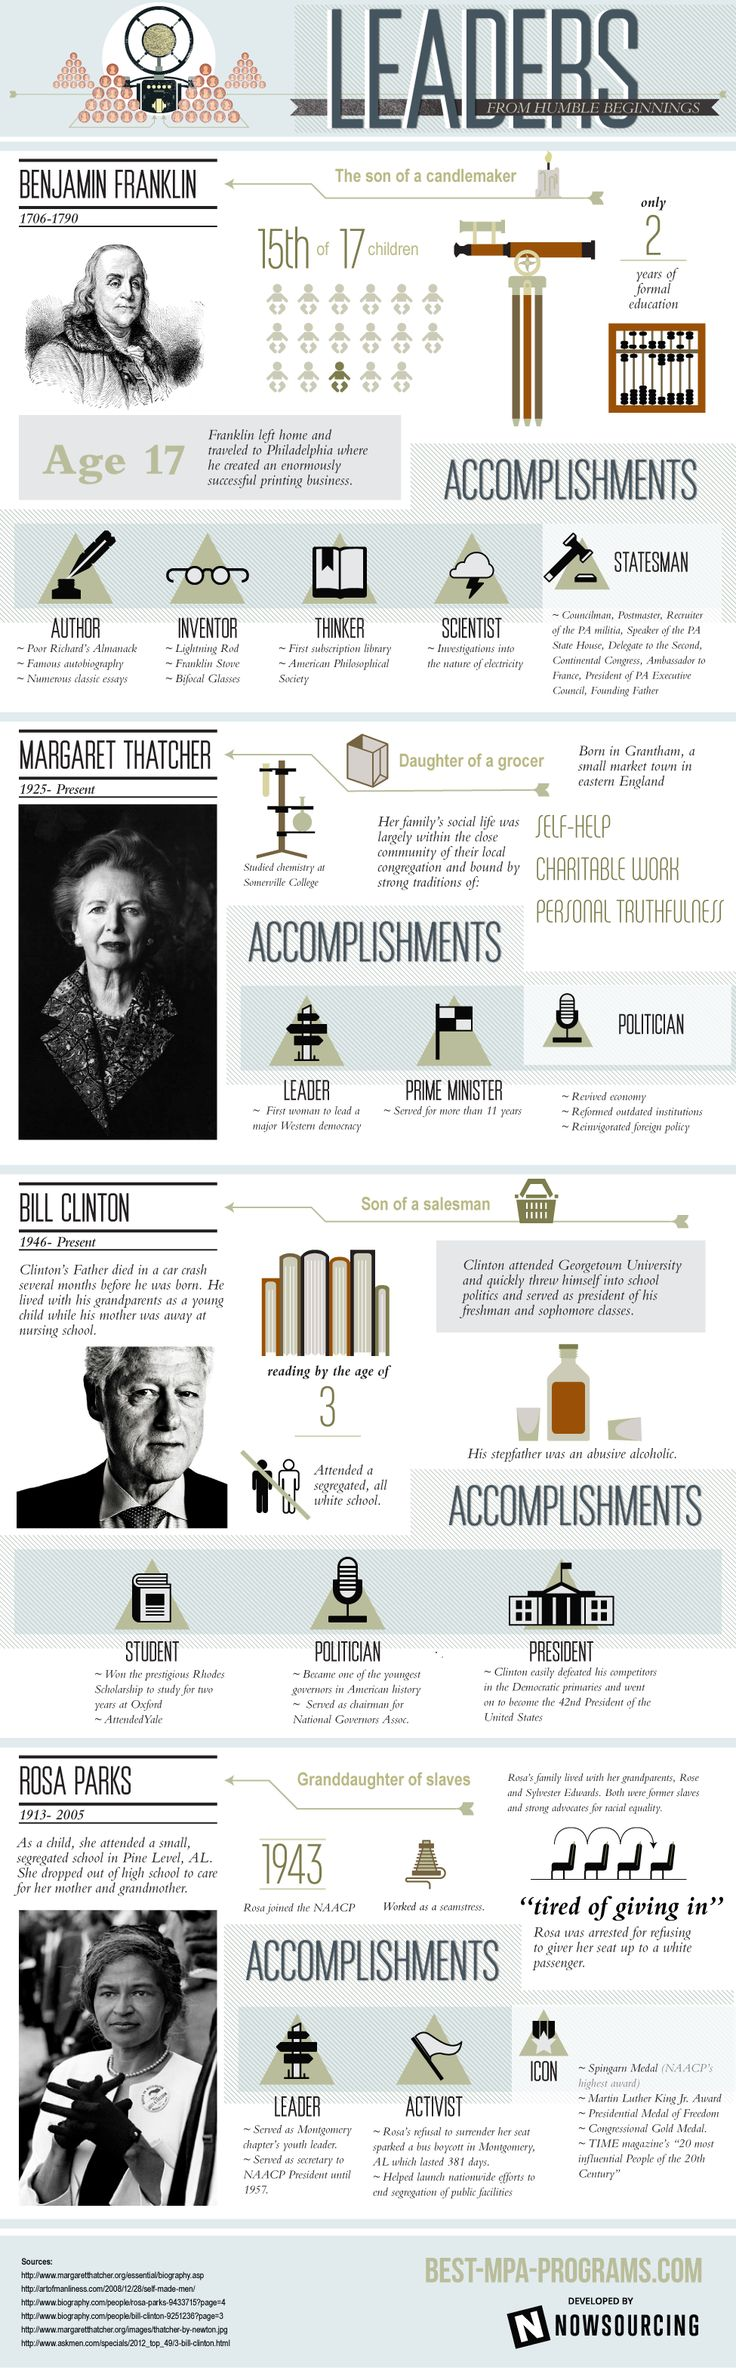 This infographic takes a look at some of Americas most famous leaders and their humble beginnings.